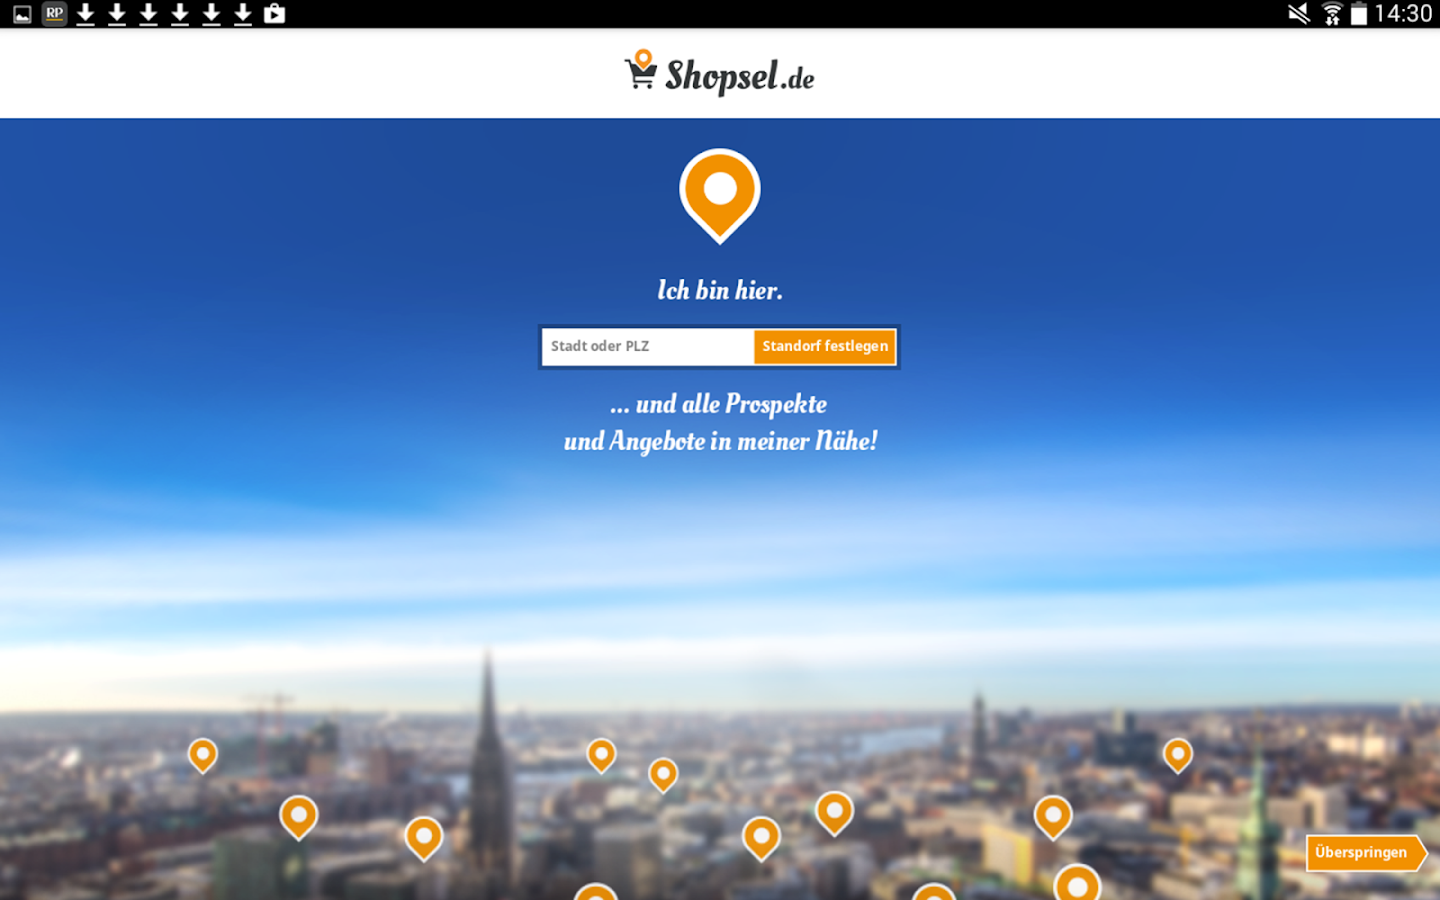 Shopsel - Regionale Prospekte- screenshot